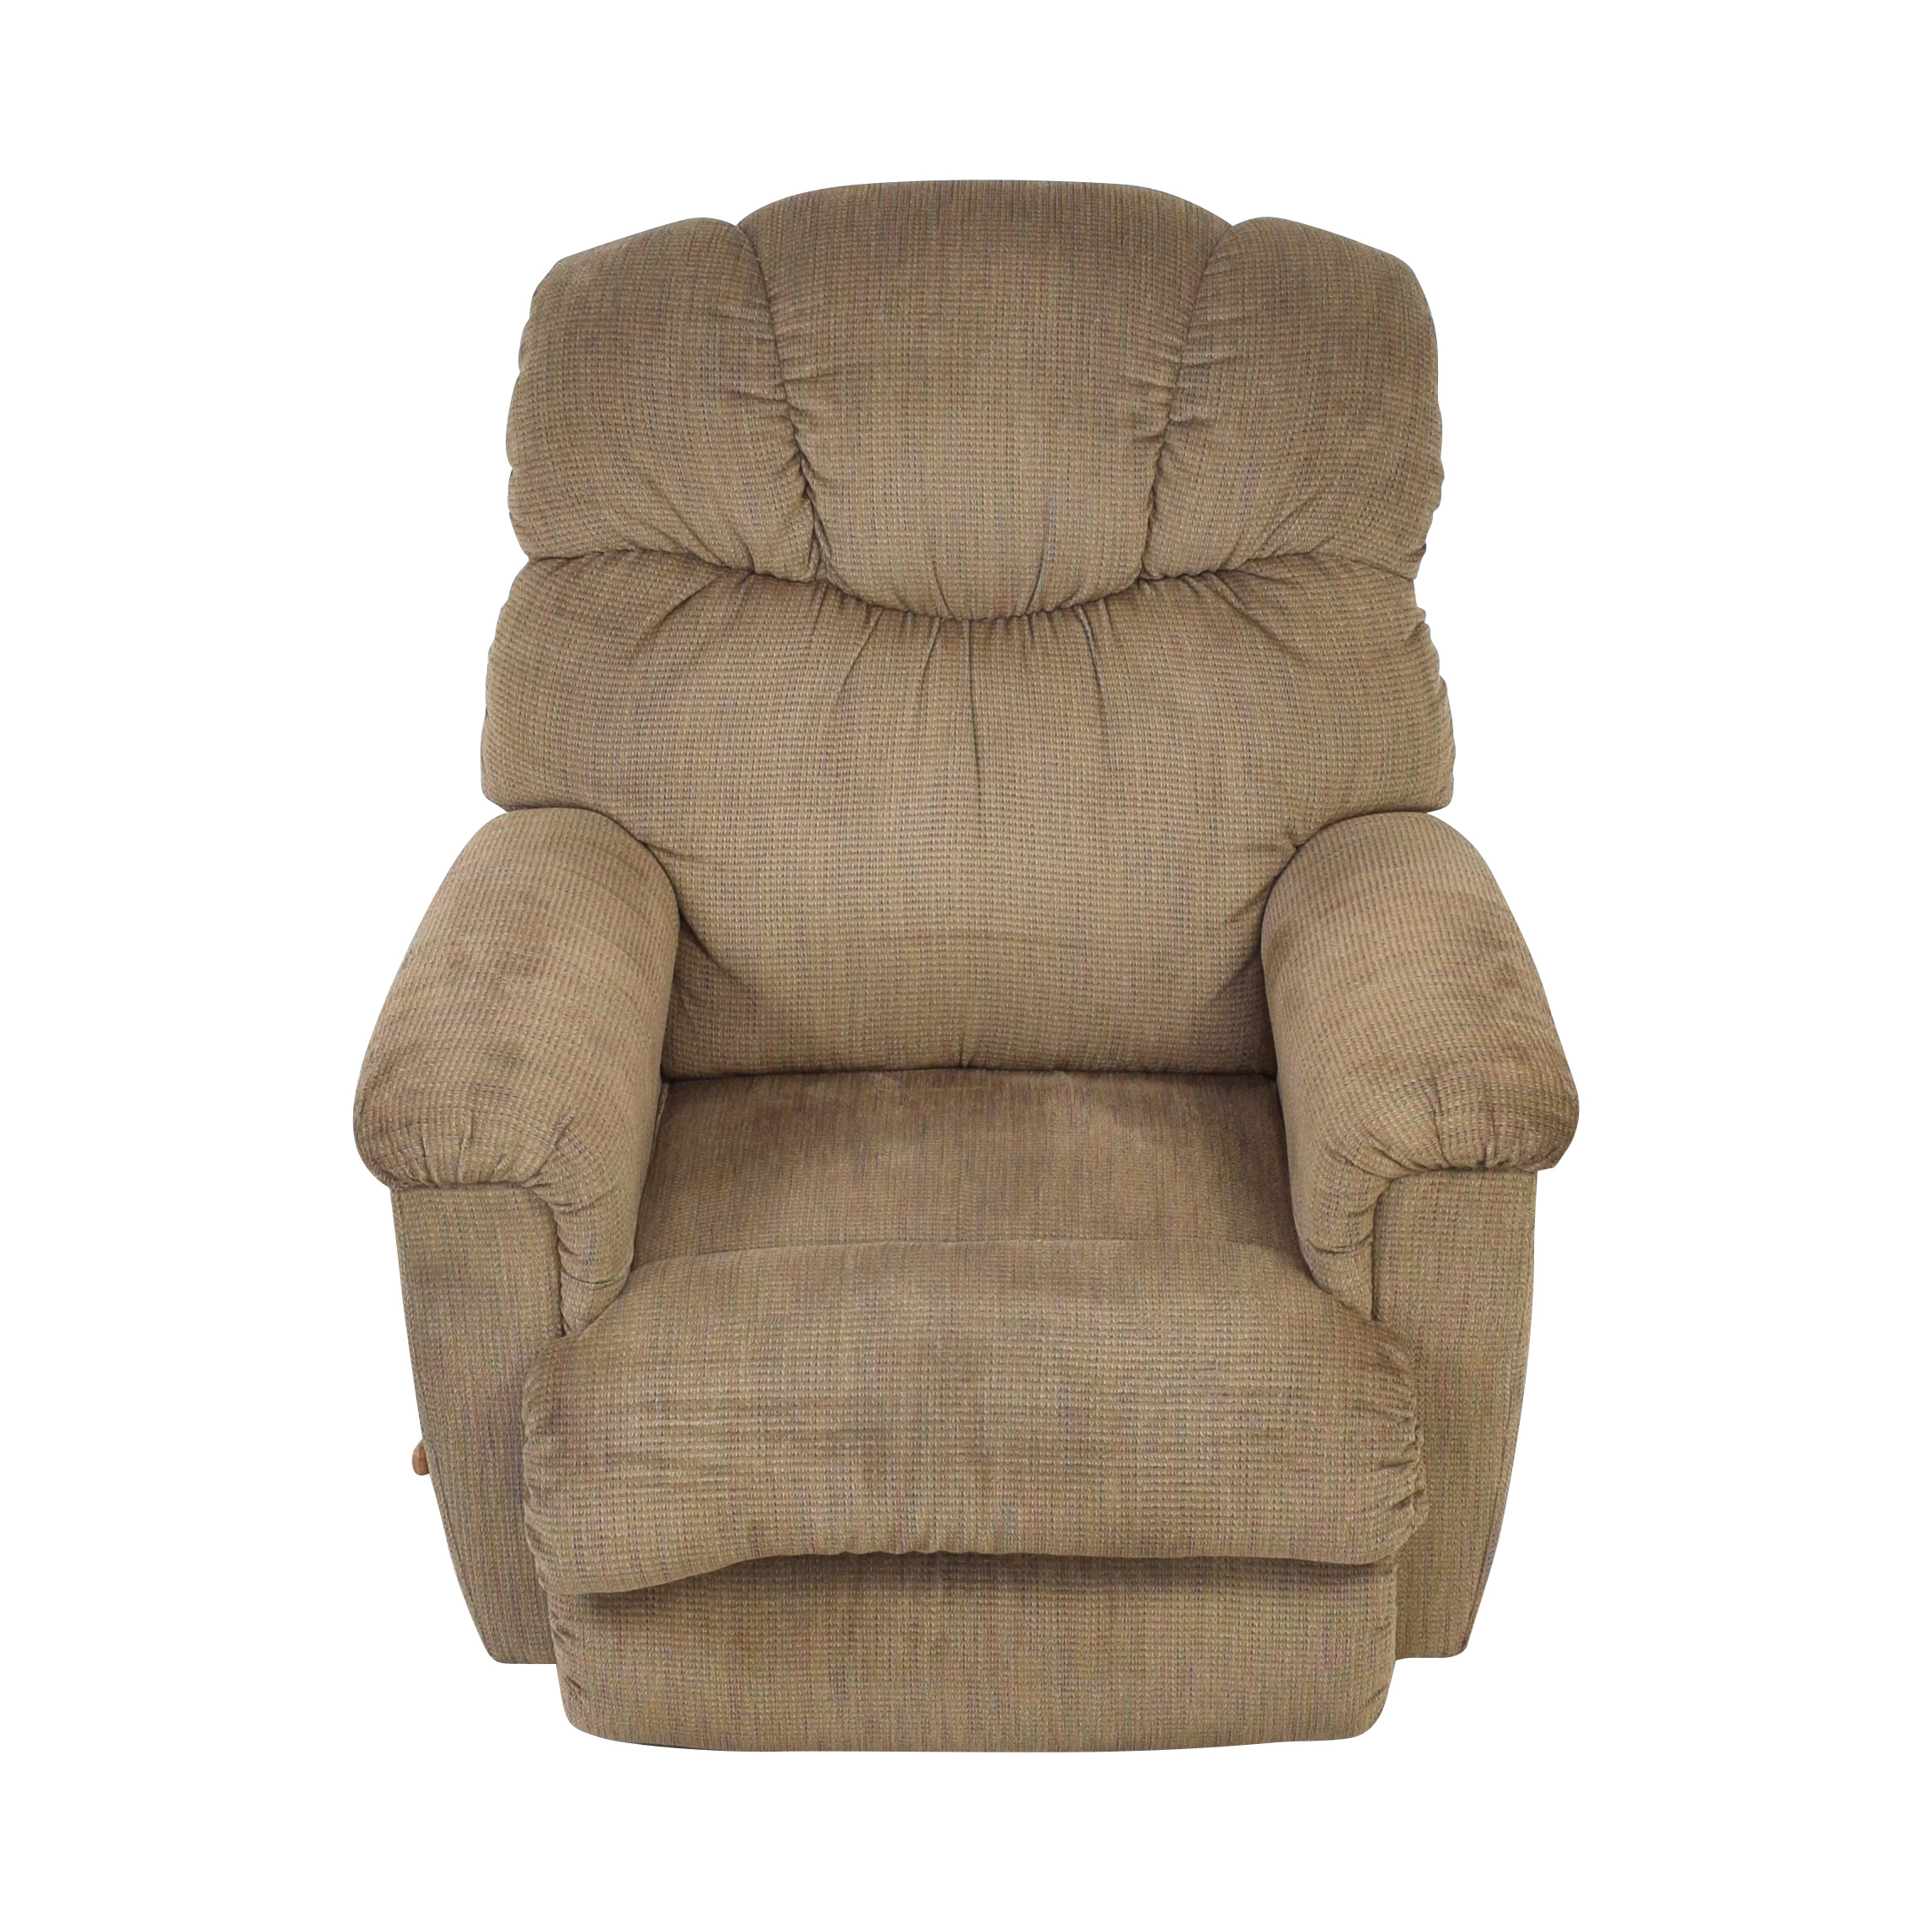 La-Z-Boy La-Z-Boy Recliner Chairs